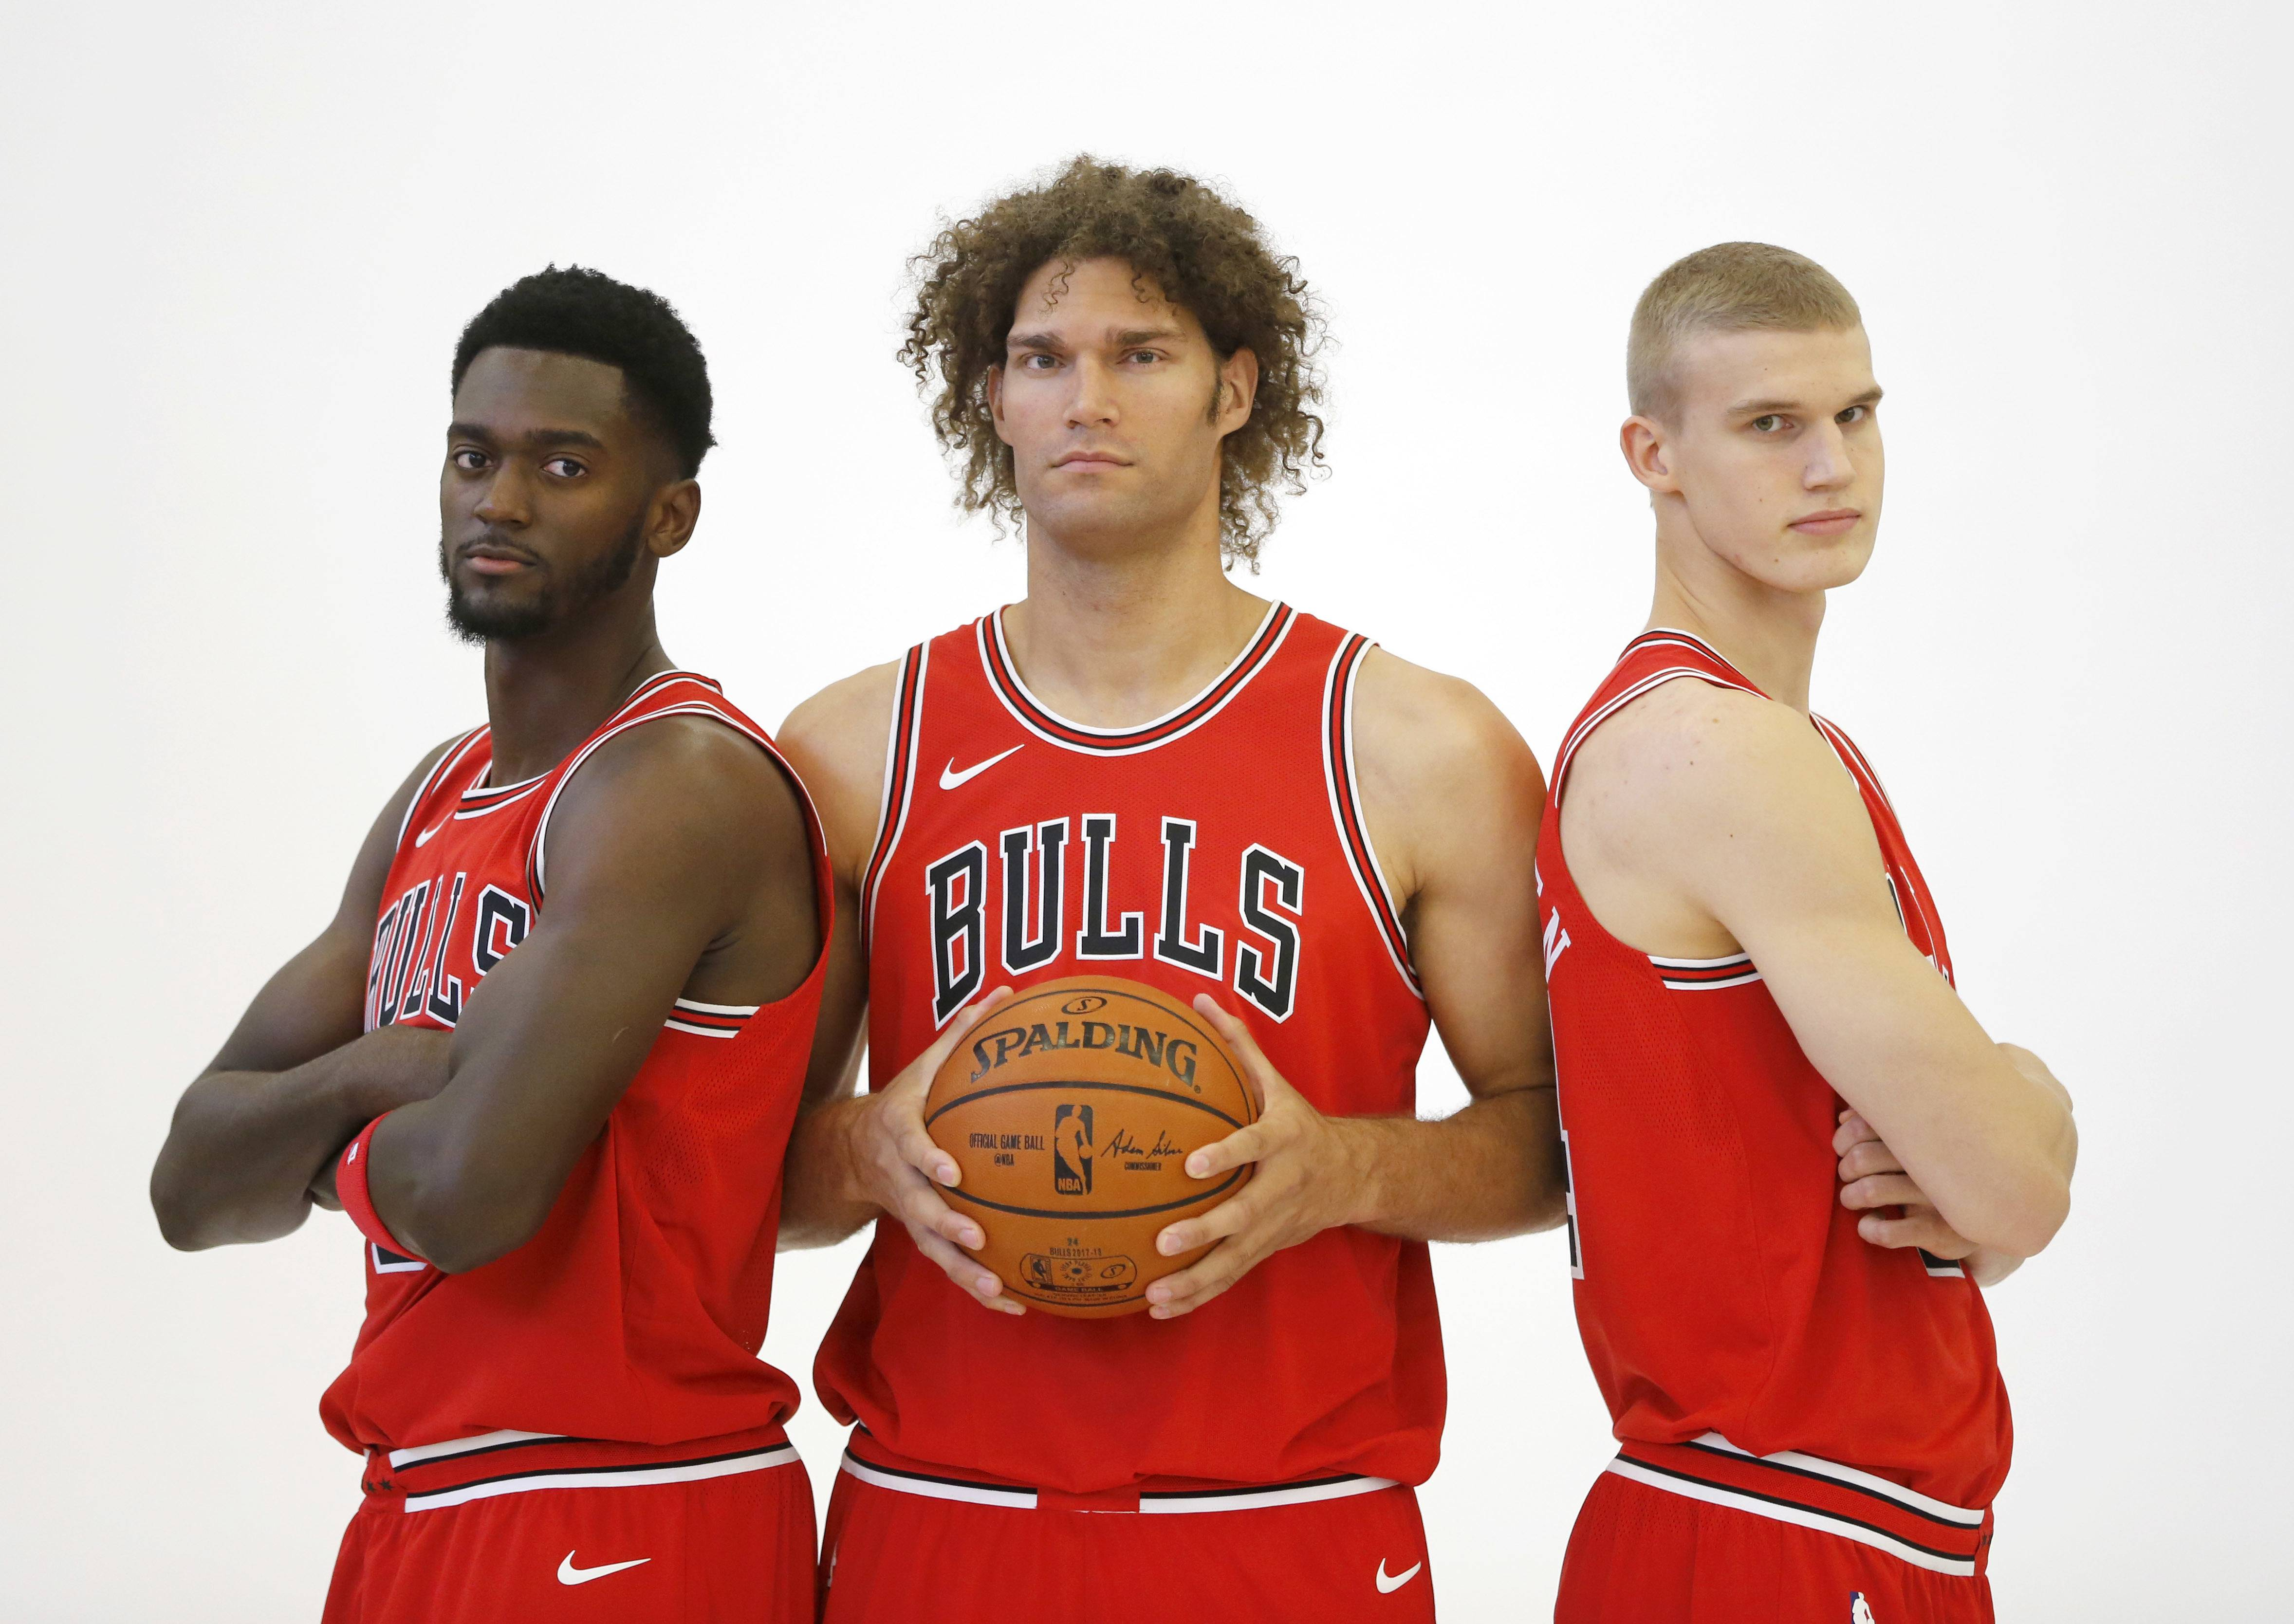 Chicago Bulls try to put positive spin on rebuilding plan as camp opens